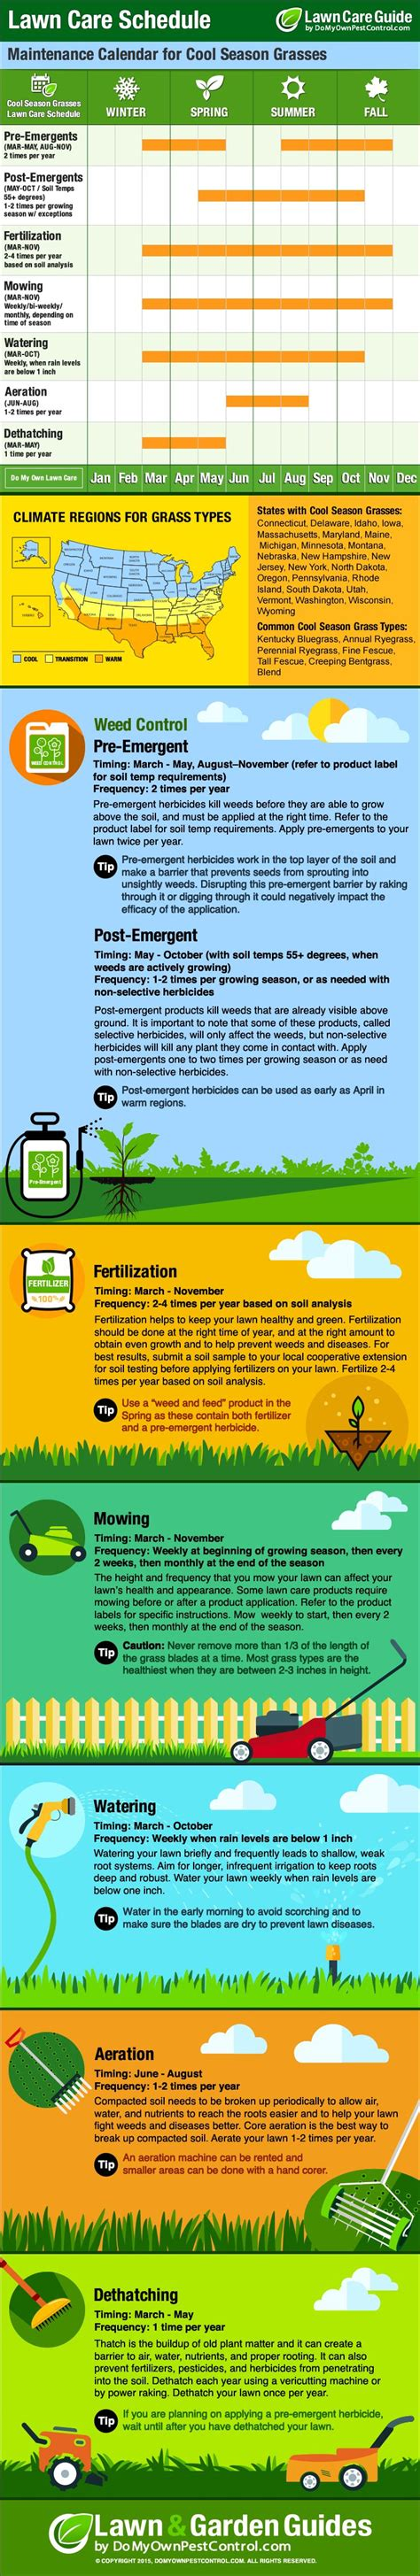 15 lawn care flyers free examples advertising ideas regarding lawn